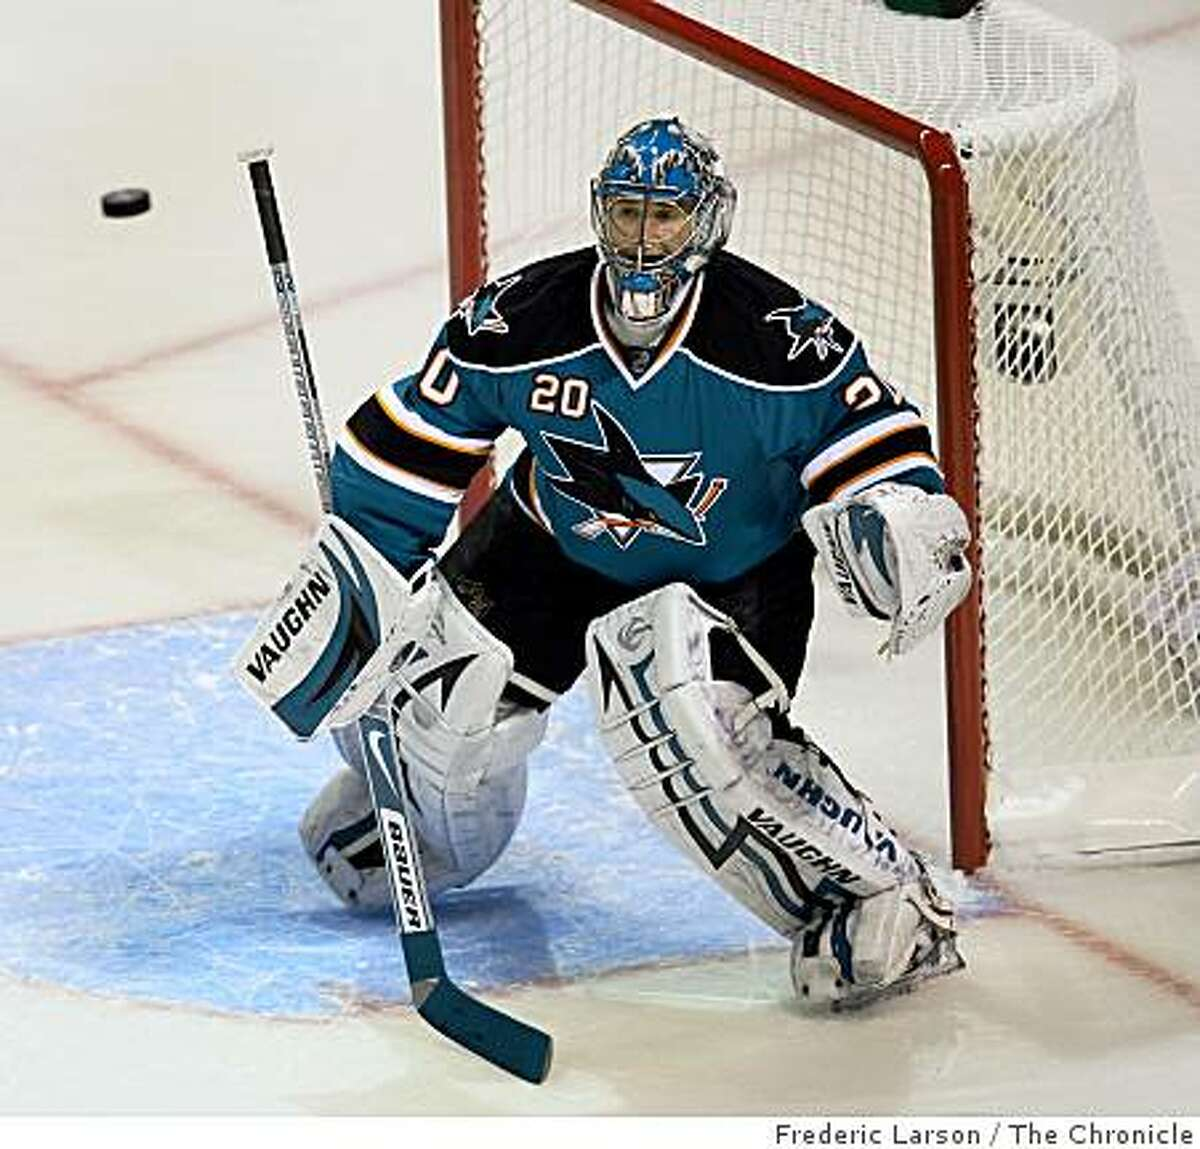 San Jose Sharks goalie Evgeni Nabokov defends a high shot on goal in the first period against the Anaheim Duck in the first round of the Stanley Cup Playoffs in San Jose on April 16, 2009.